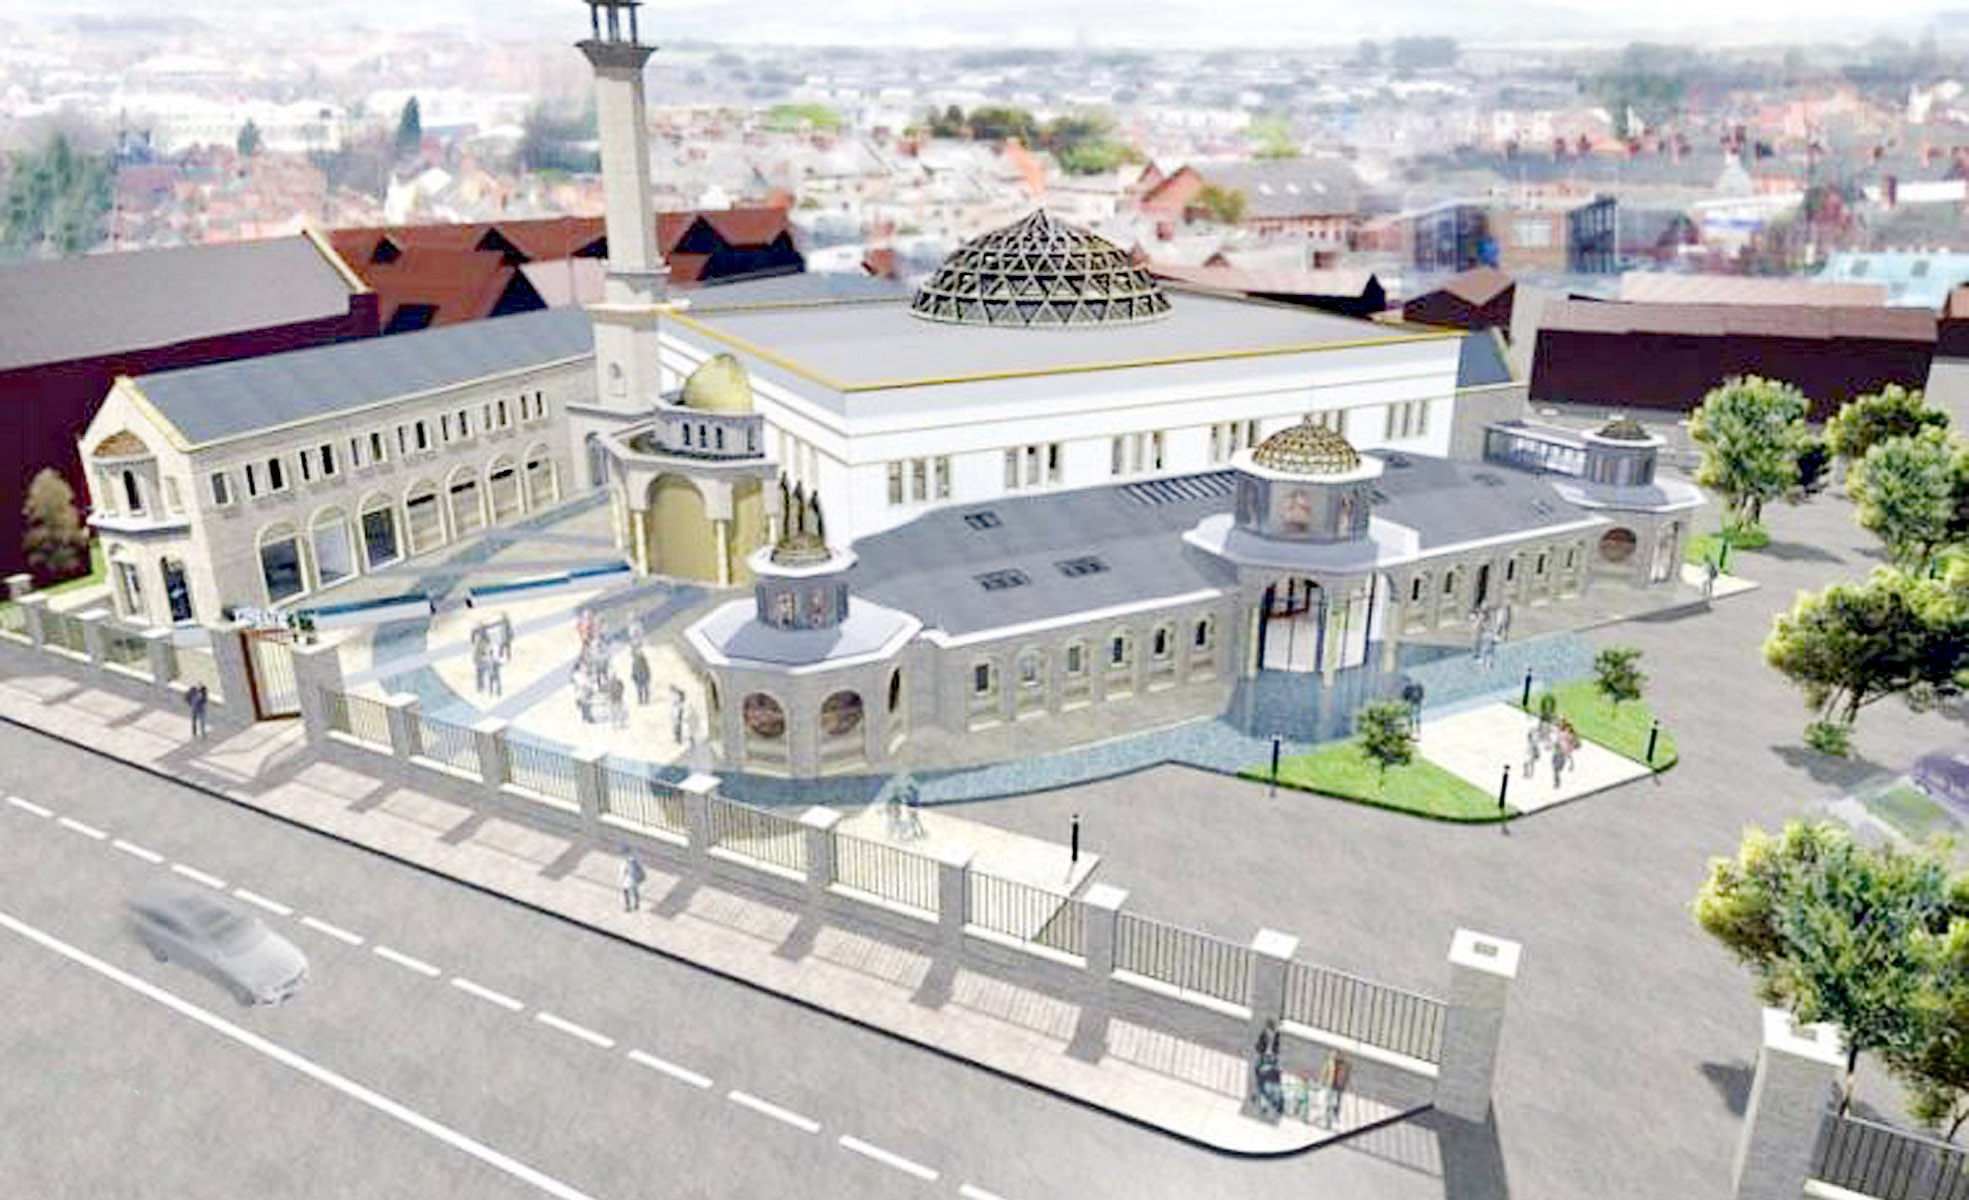 Plans for new 'super' mosque in Astley Bridge